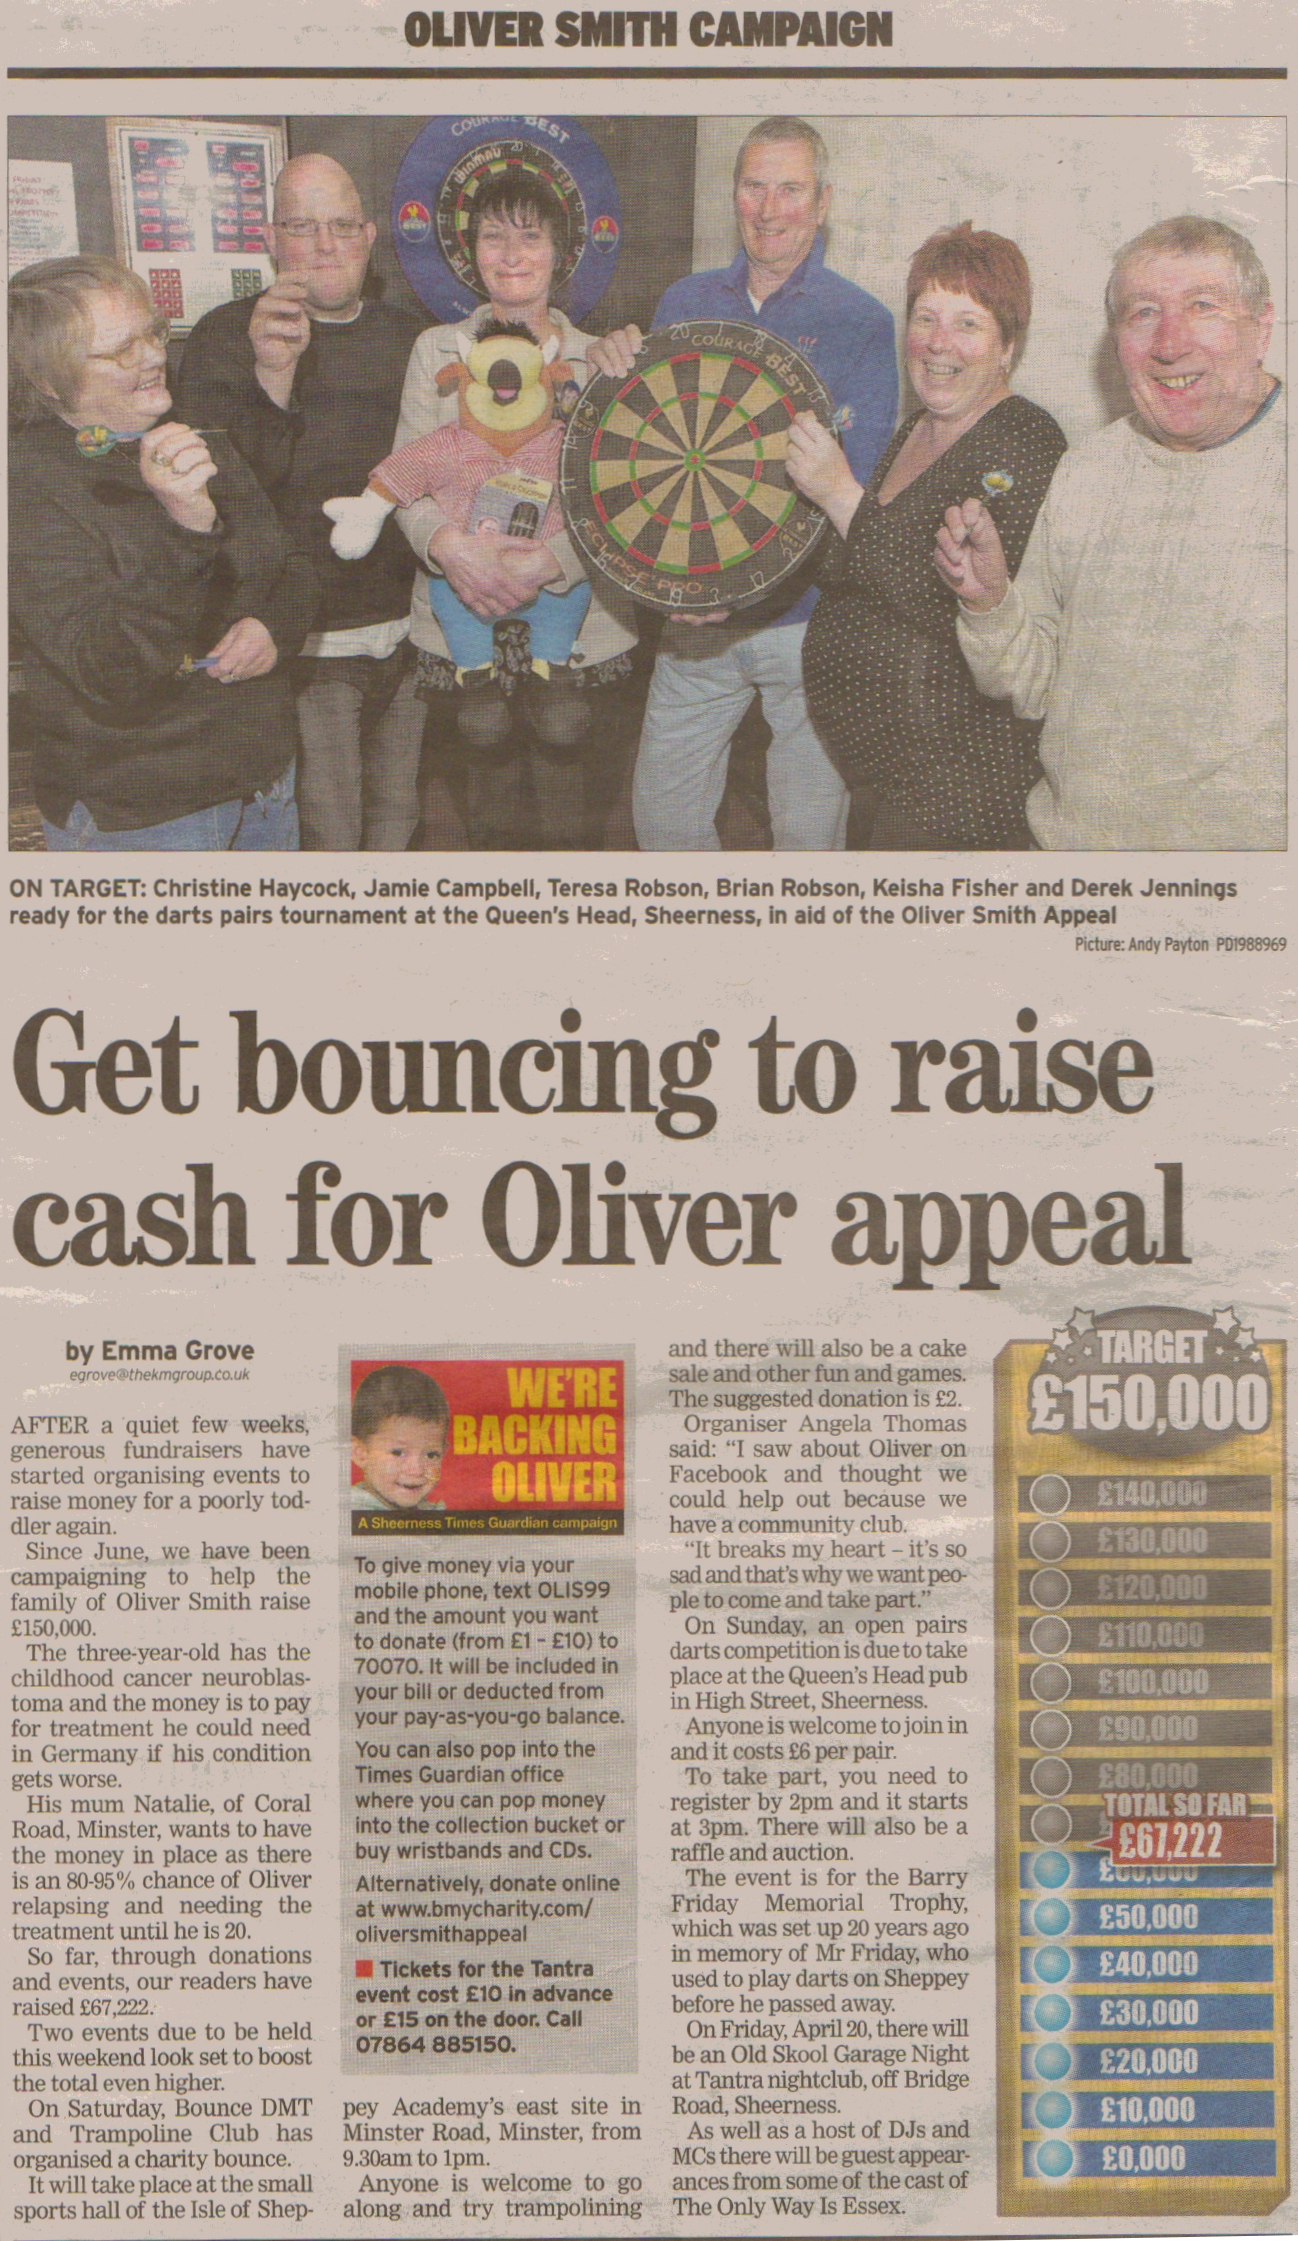 Sheerness Times Guardian - 8th February 2012